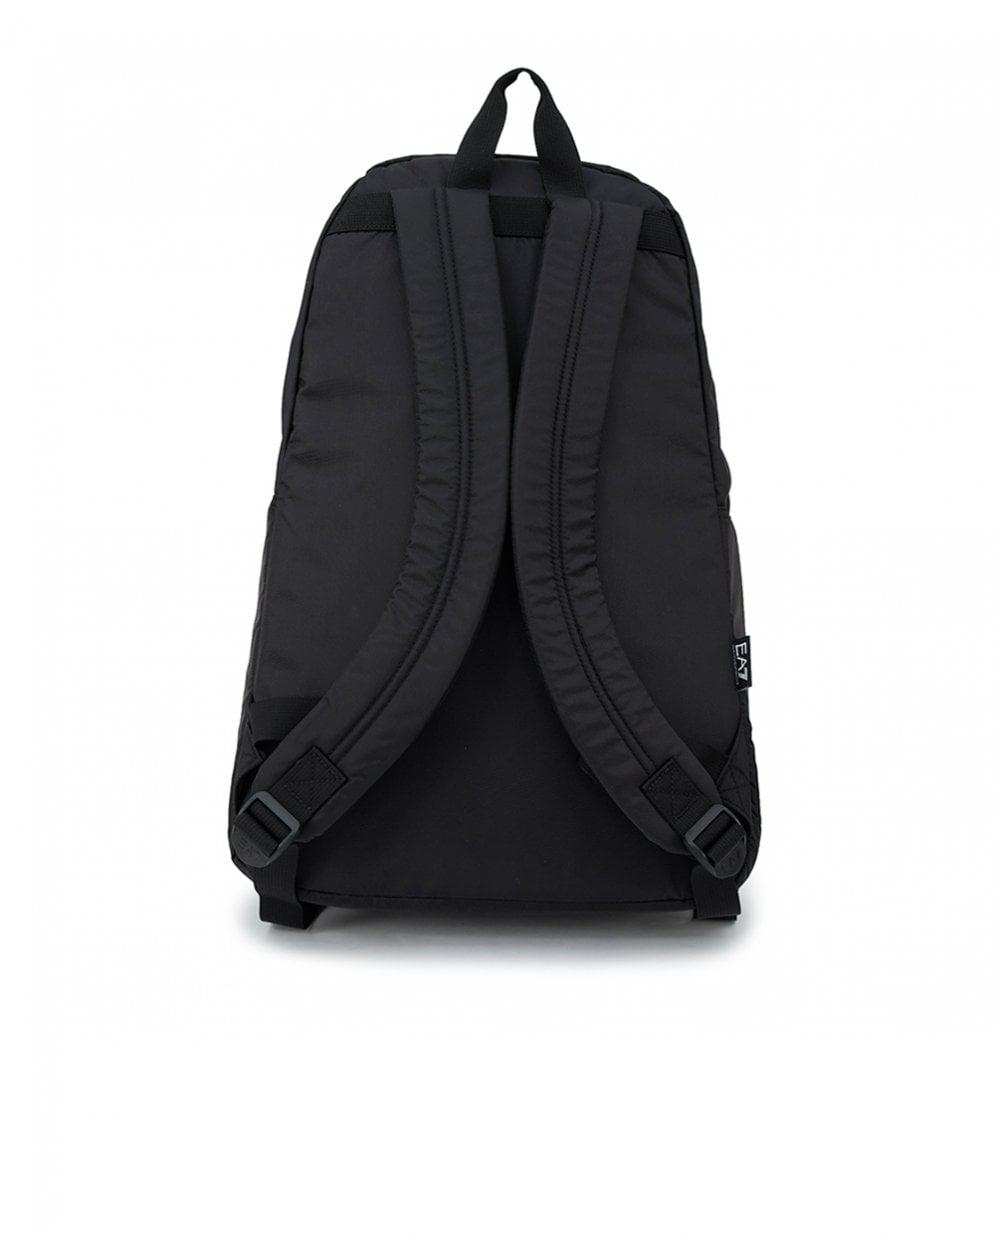 dfe25a98fa Lyst - EA7 Train Prime Backpack in Black for Men